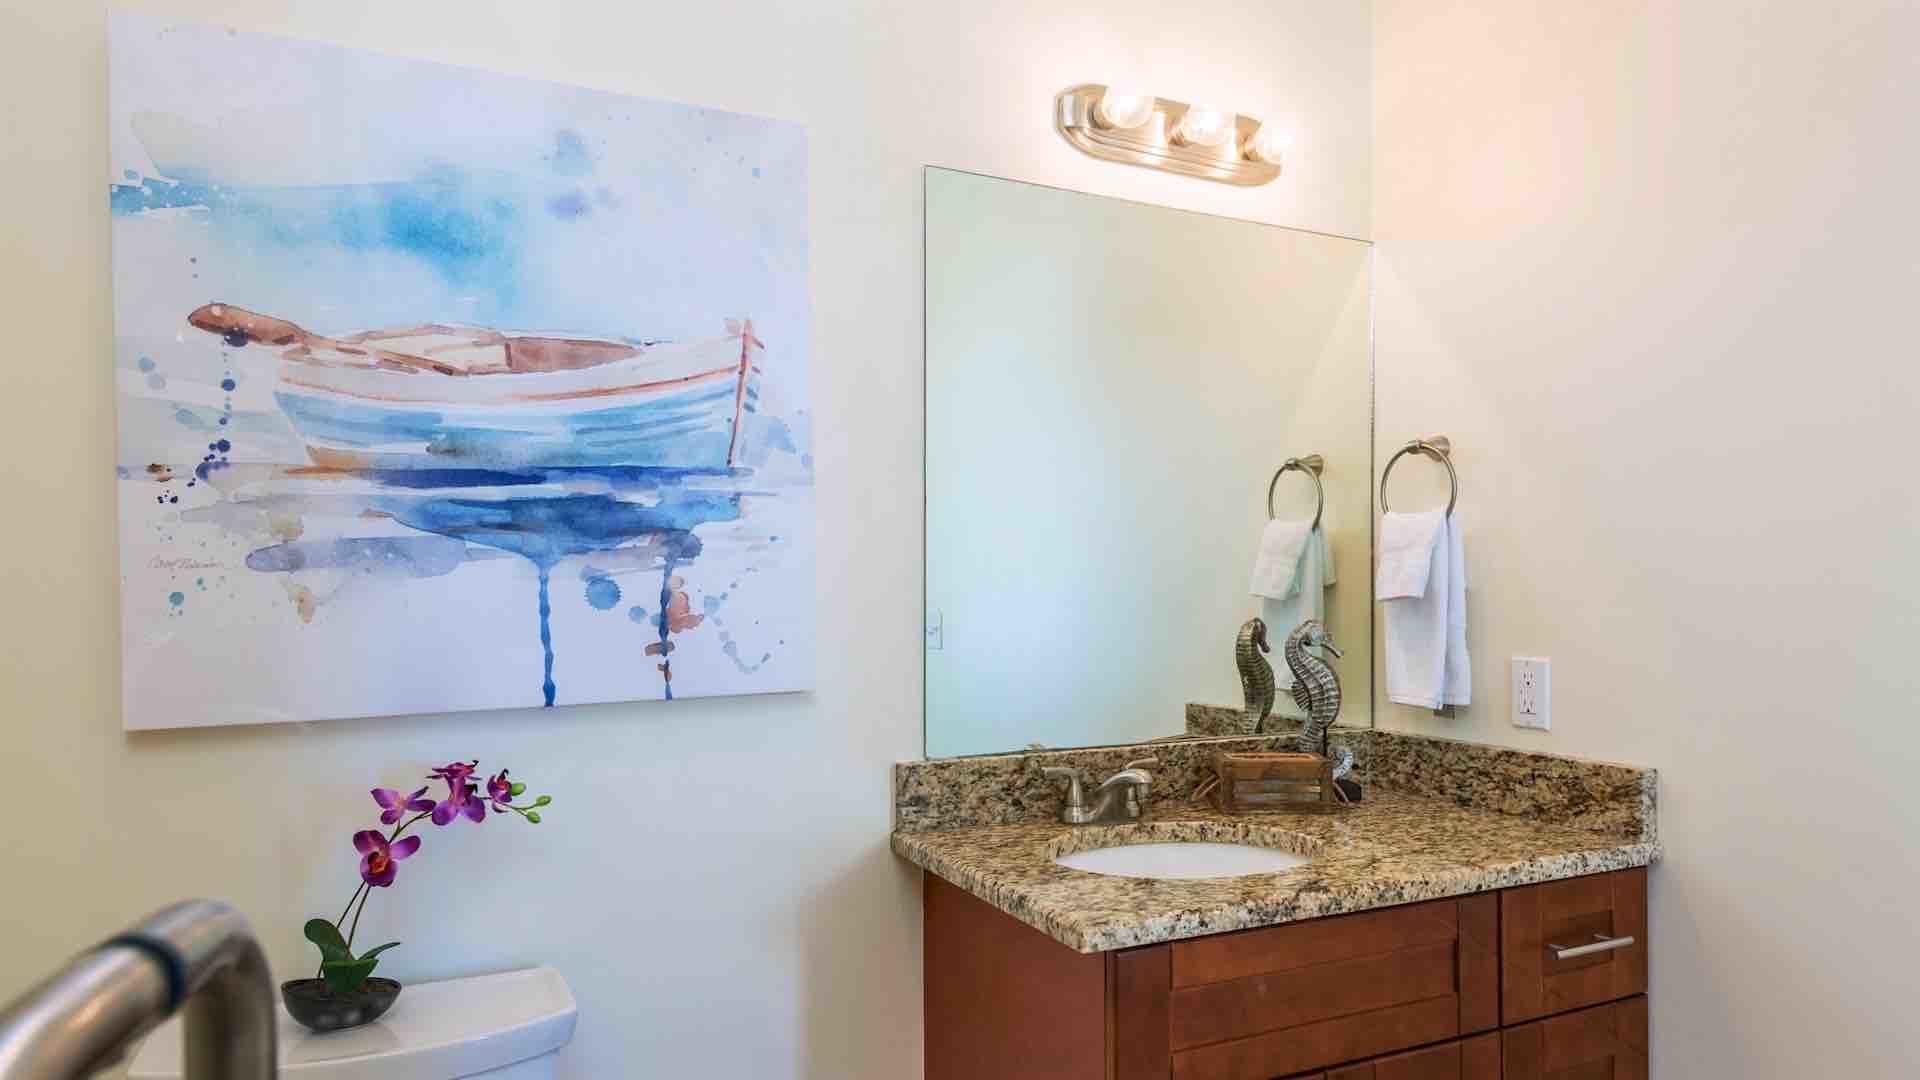 The second upstairs bathroom is located between the second and third bedrooms...